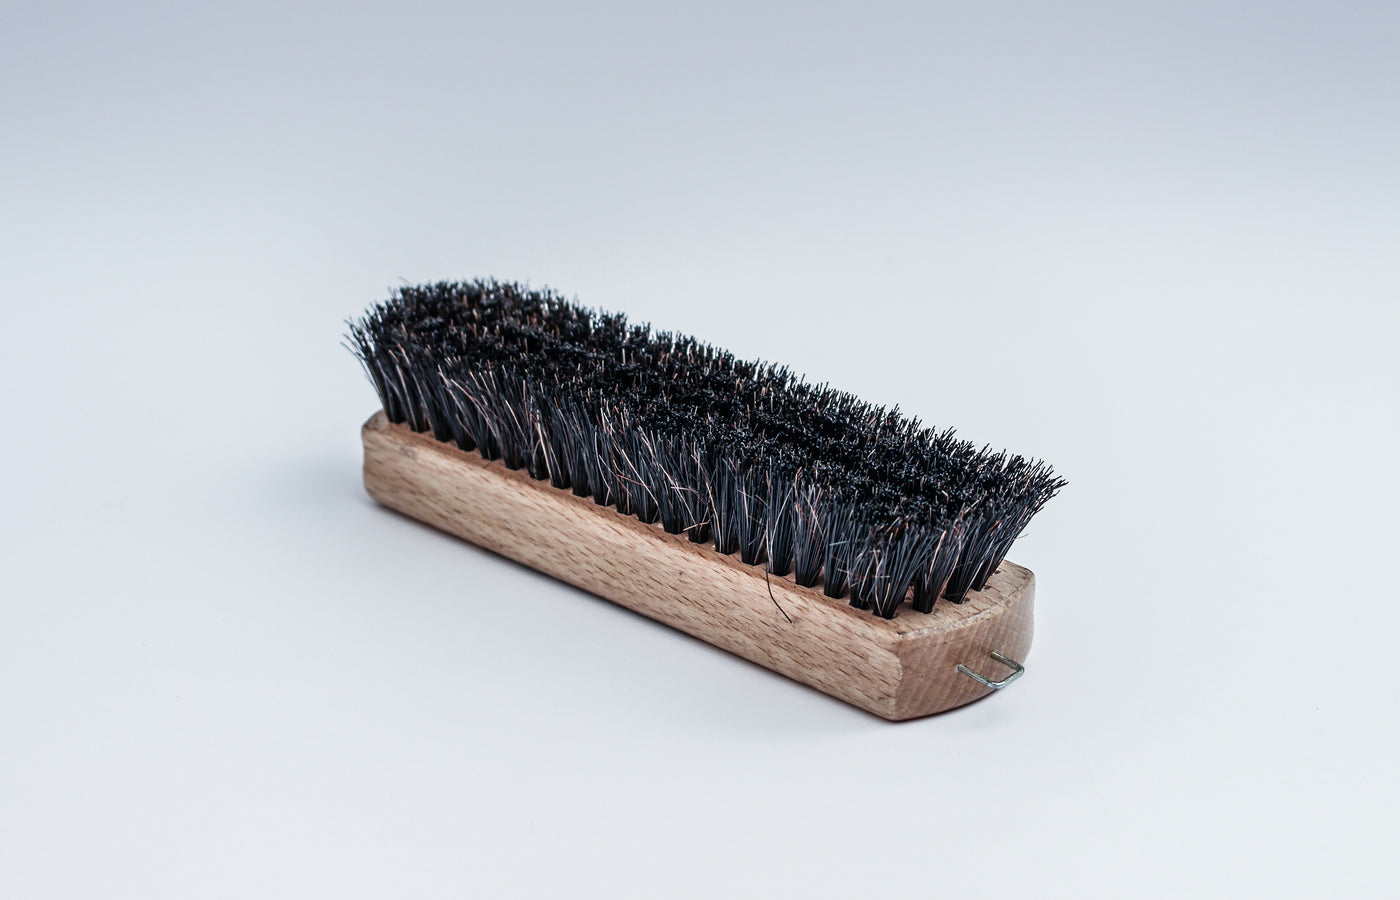 files/brush-cleaning-scrubber-45059.jpg